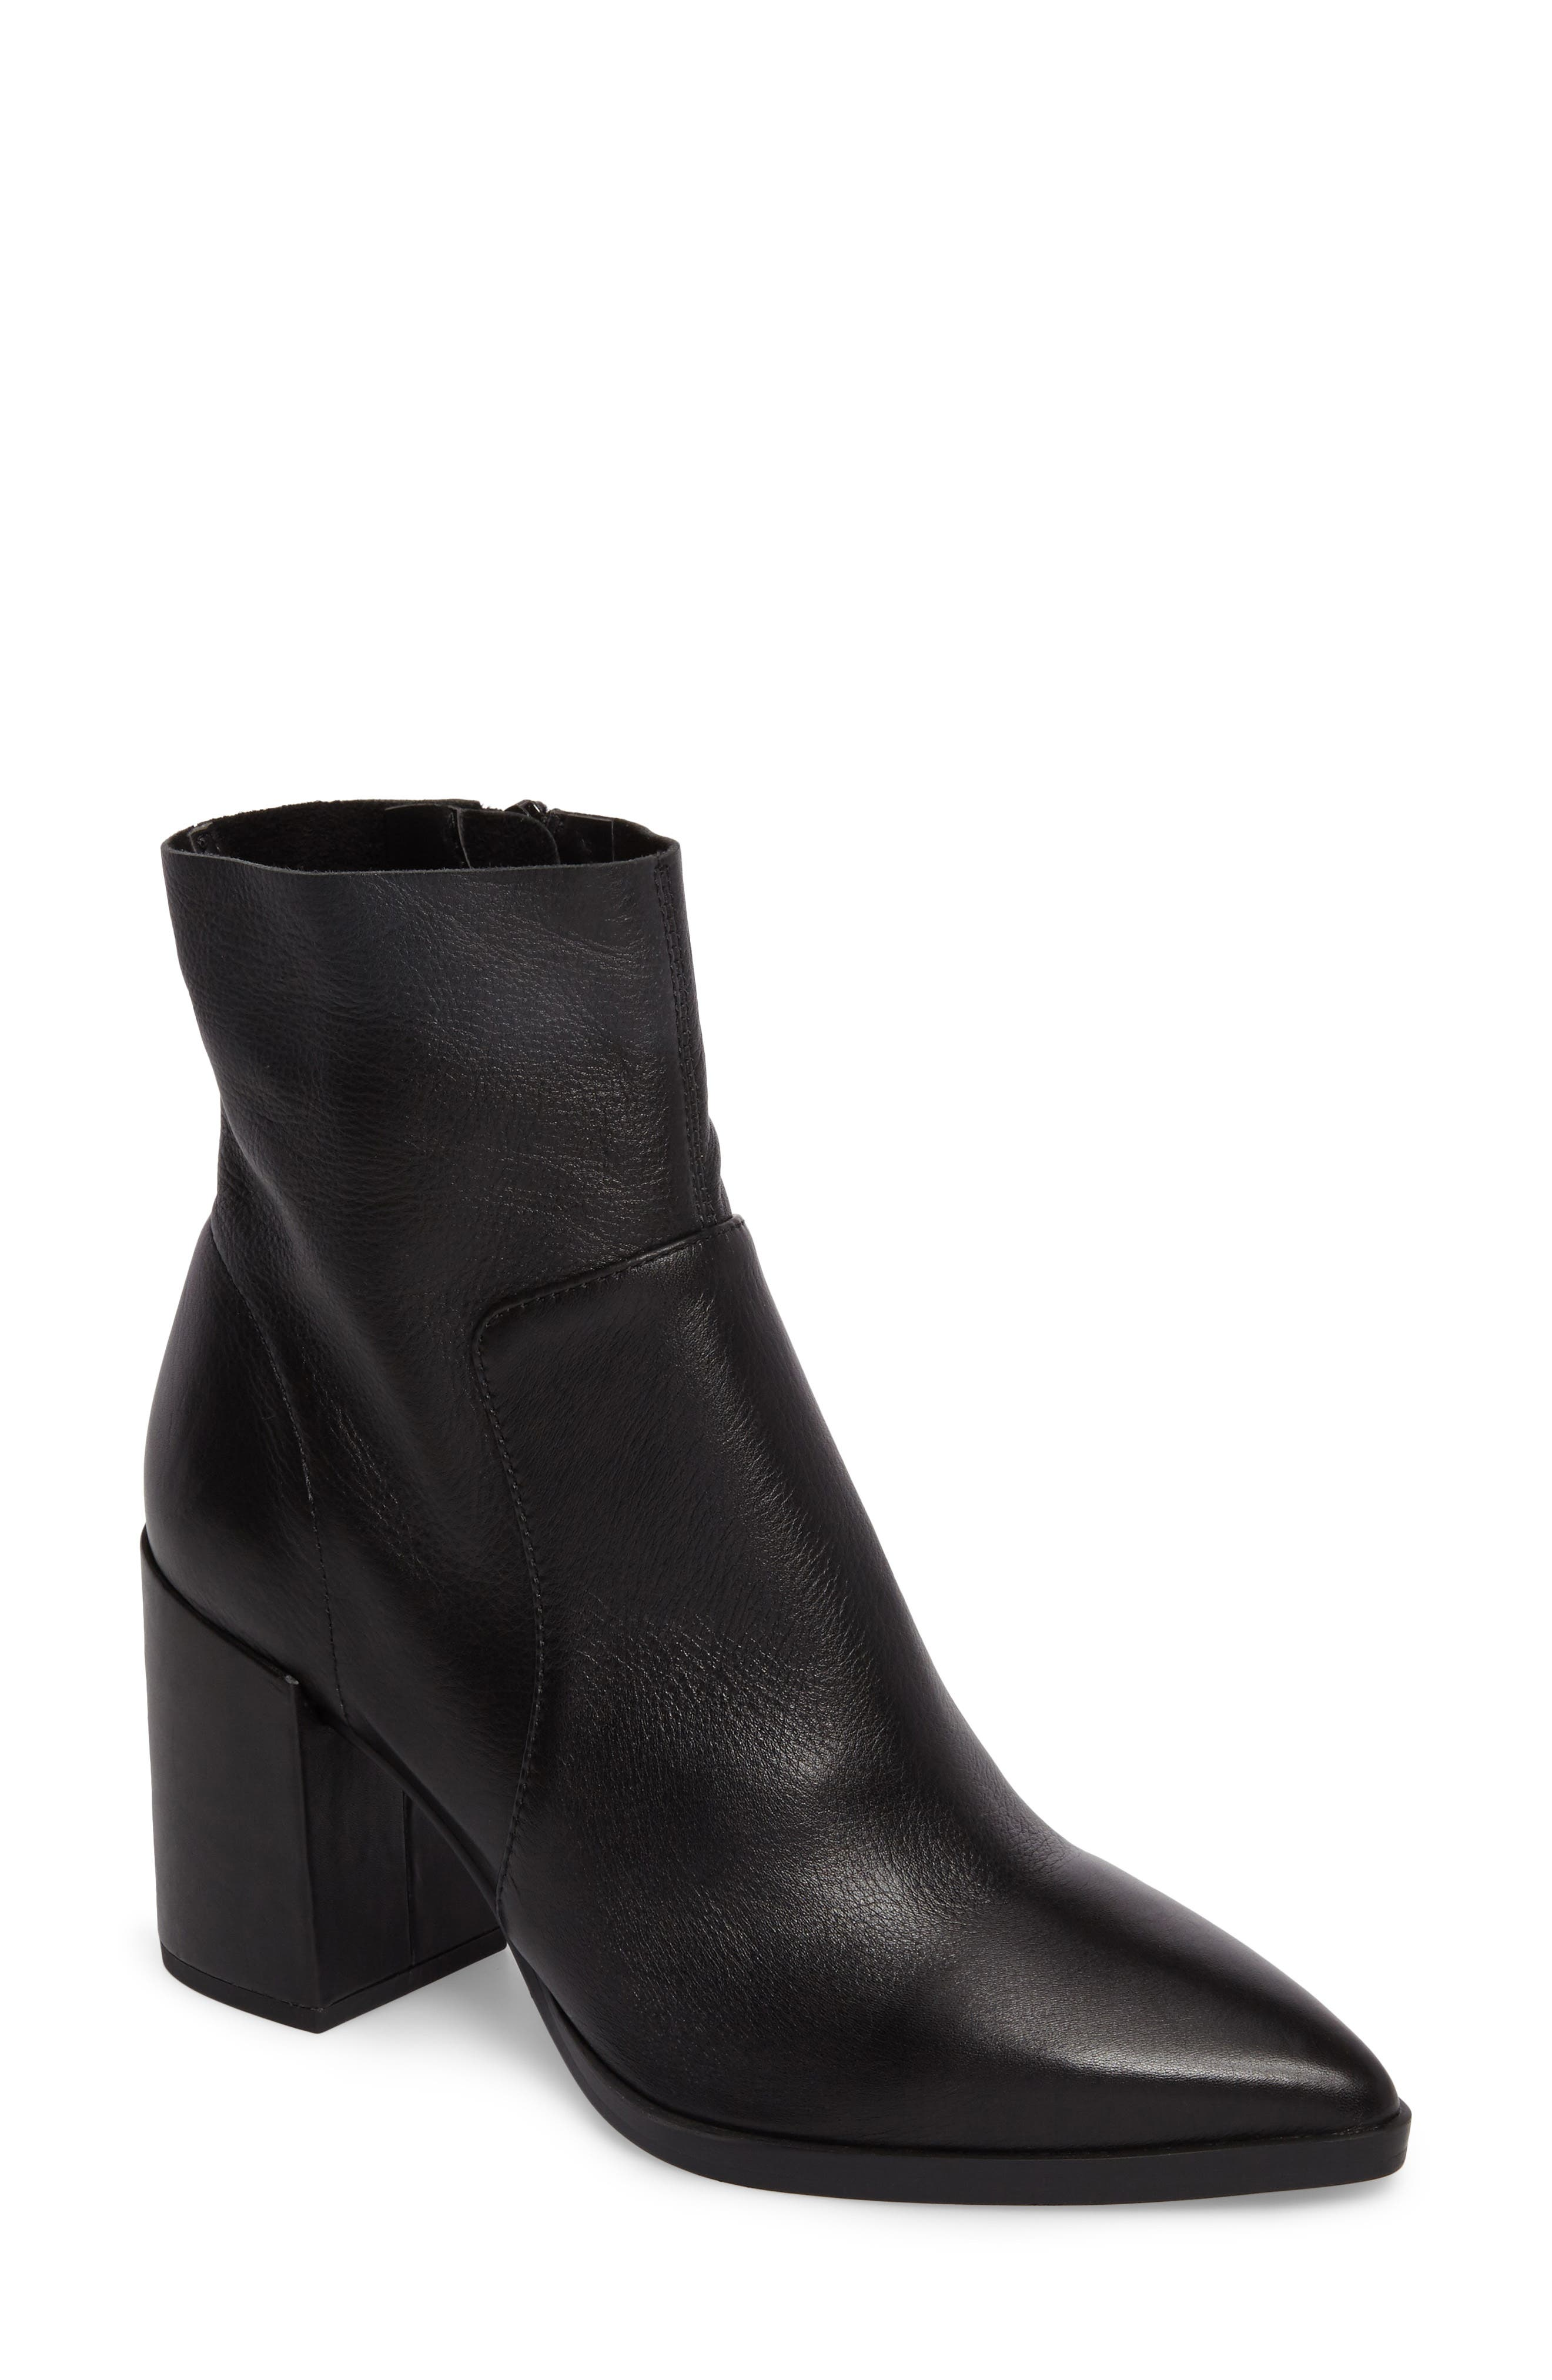 TONY BIANCO Brazen Pointy Toe Bootie in Black Leather